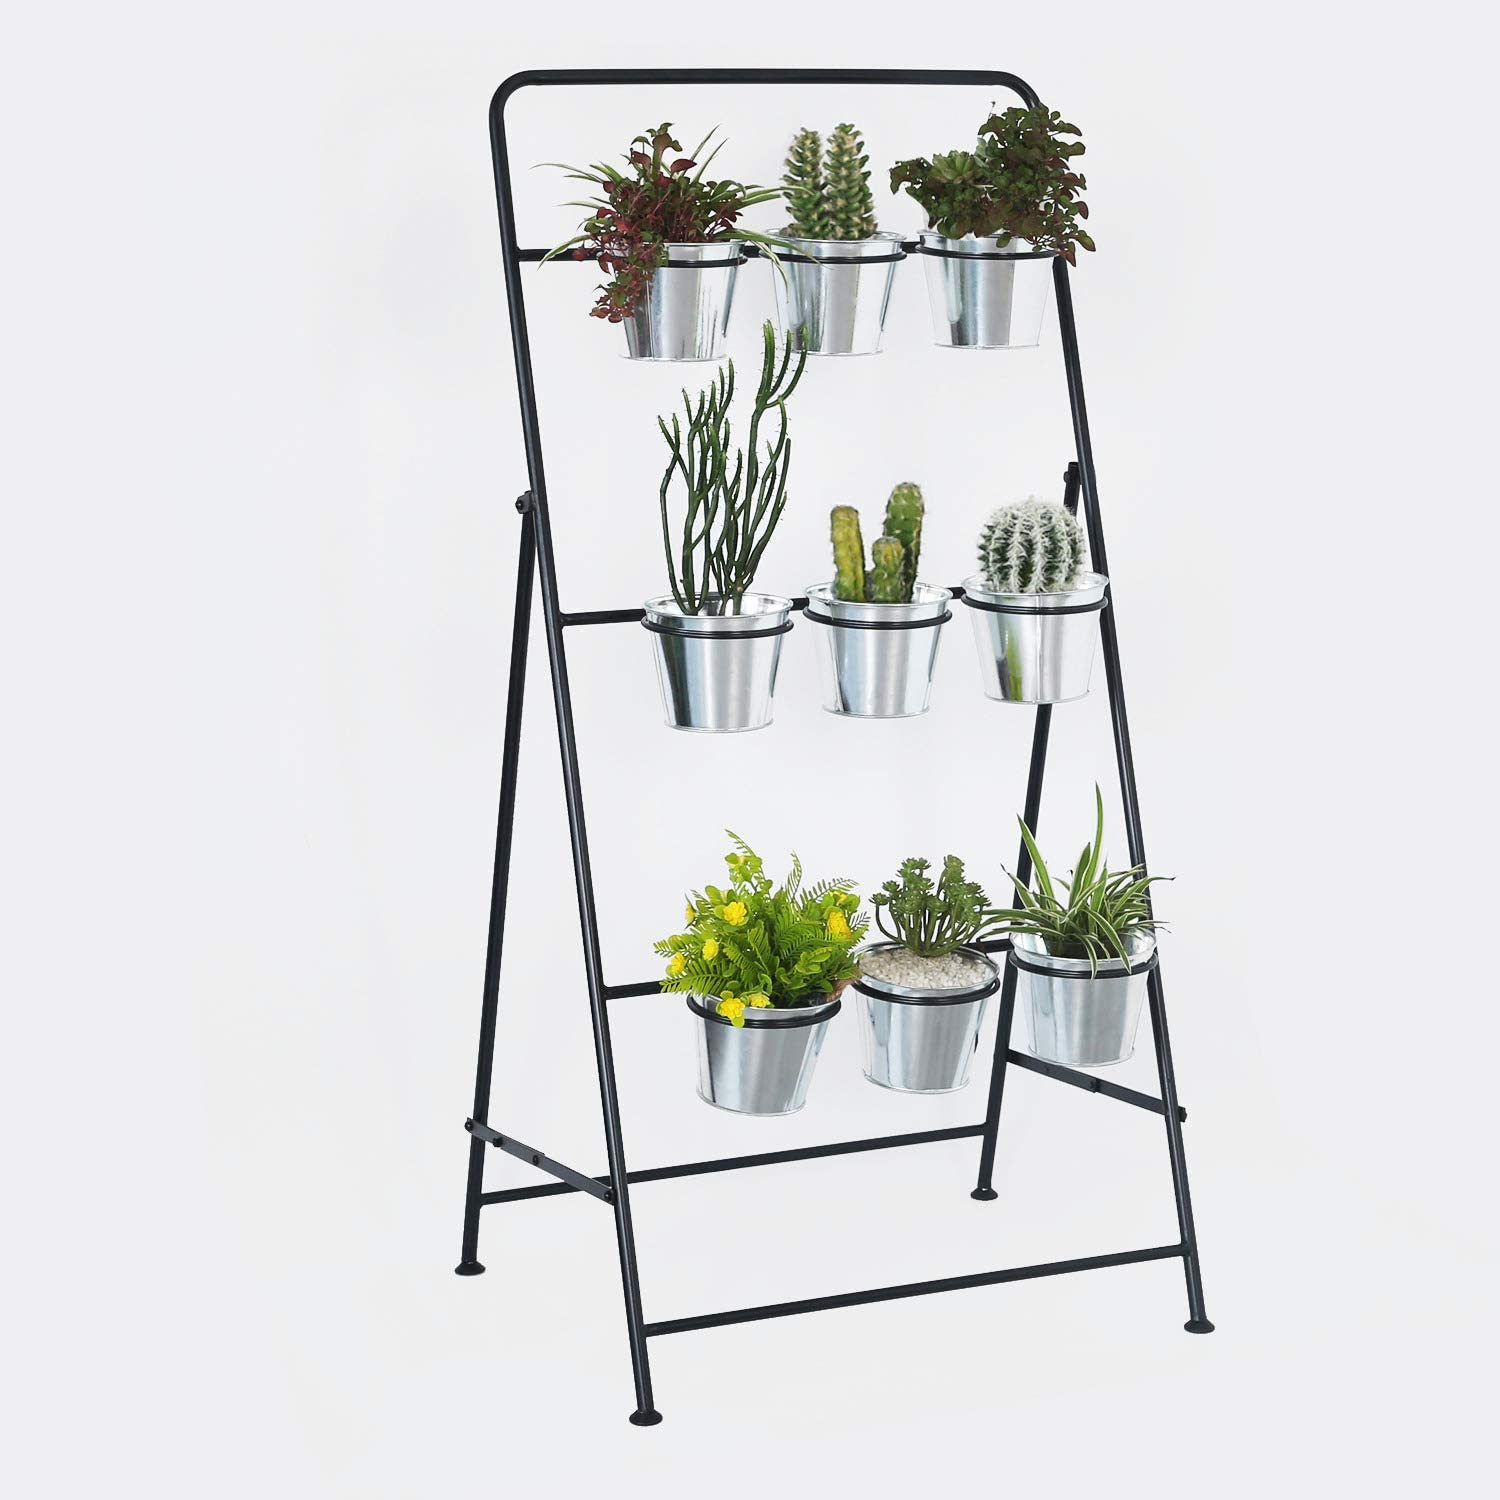 4FT Vertical Garden Tiered Metal Plant Stand Includes 9 Galvanized Planting Pots Indoor or Outdoor Plant Rack is Ideal for Displaying Plants, Herbs, Flowers and Succulents